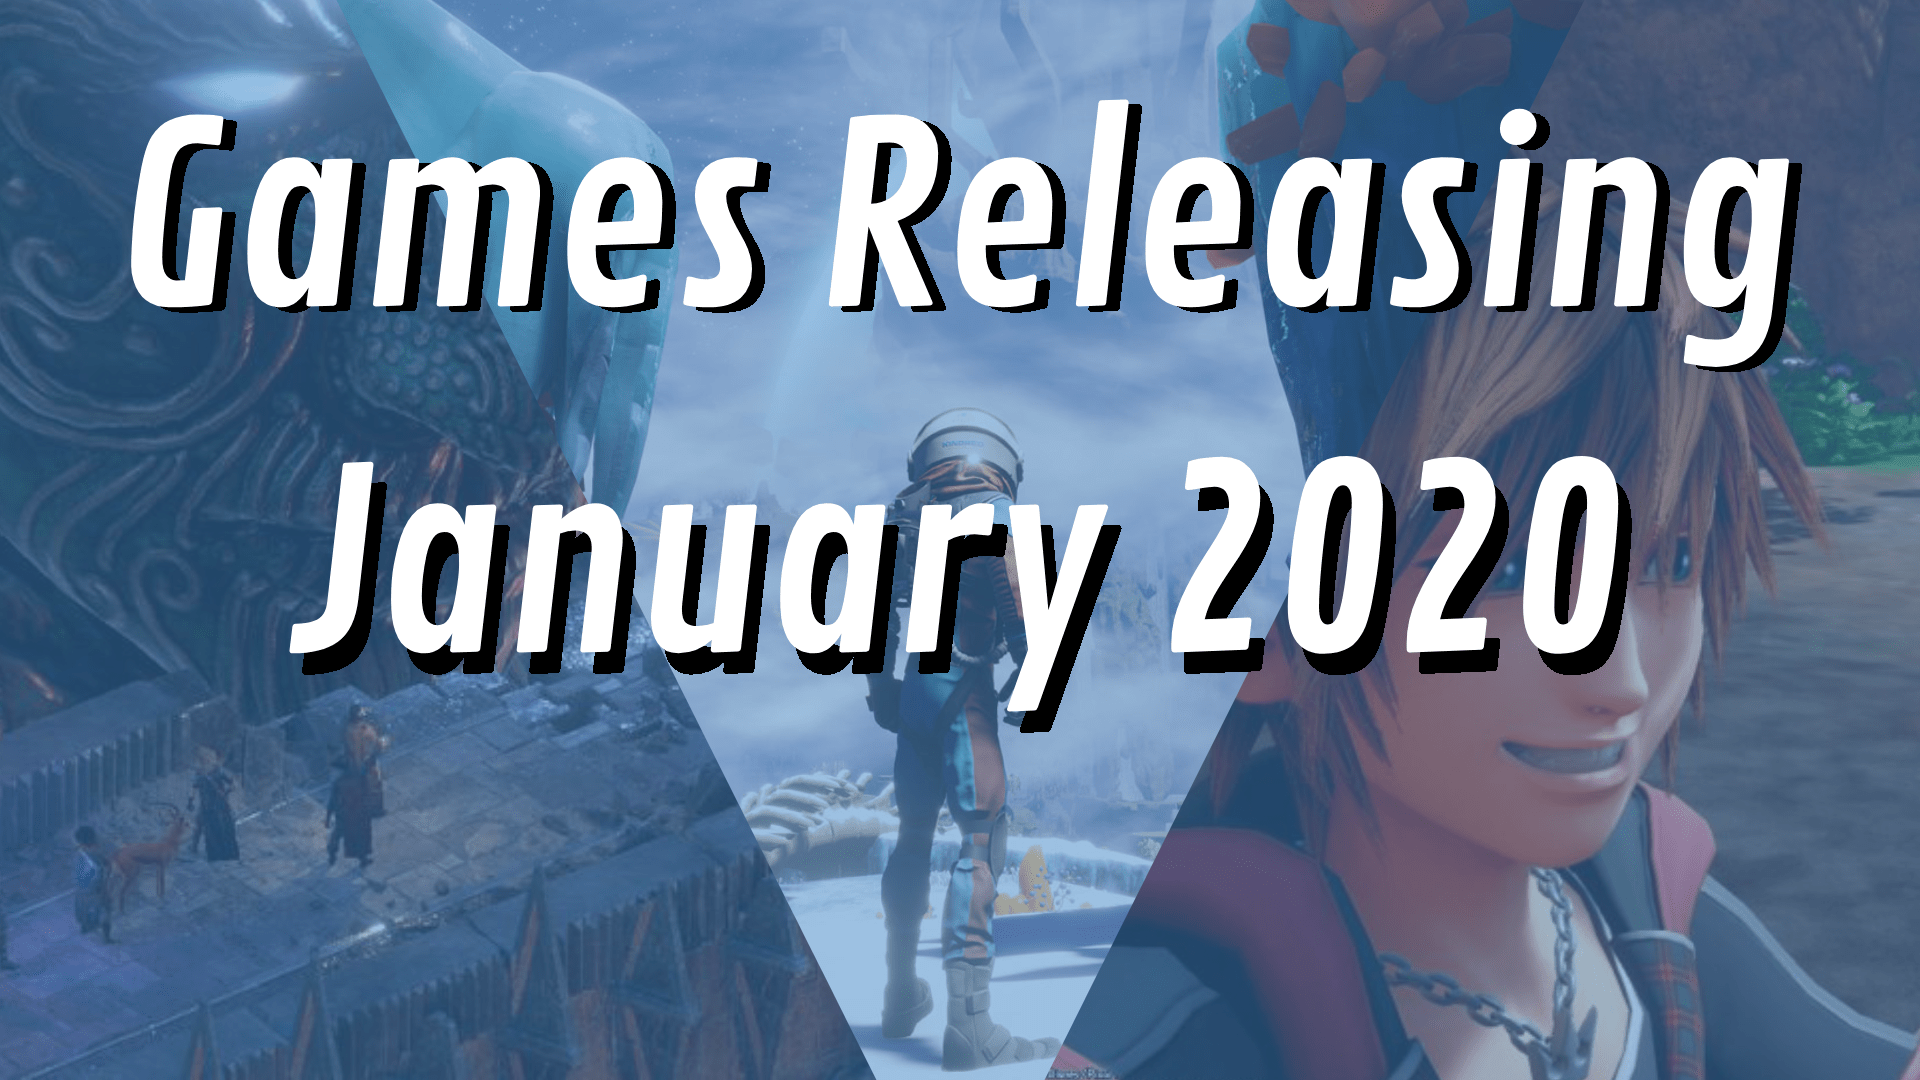 What's coming in January 2020